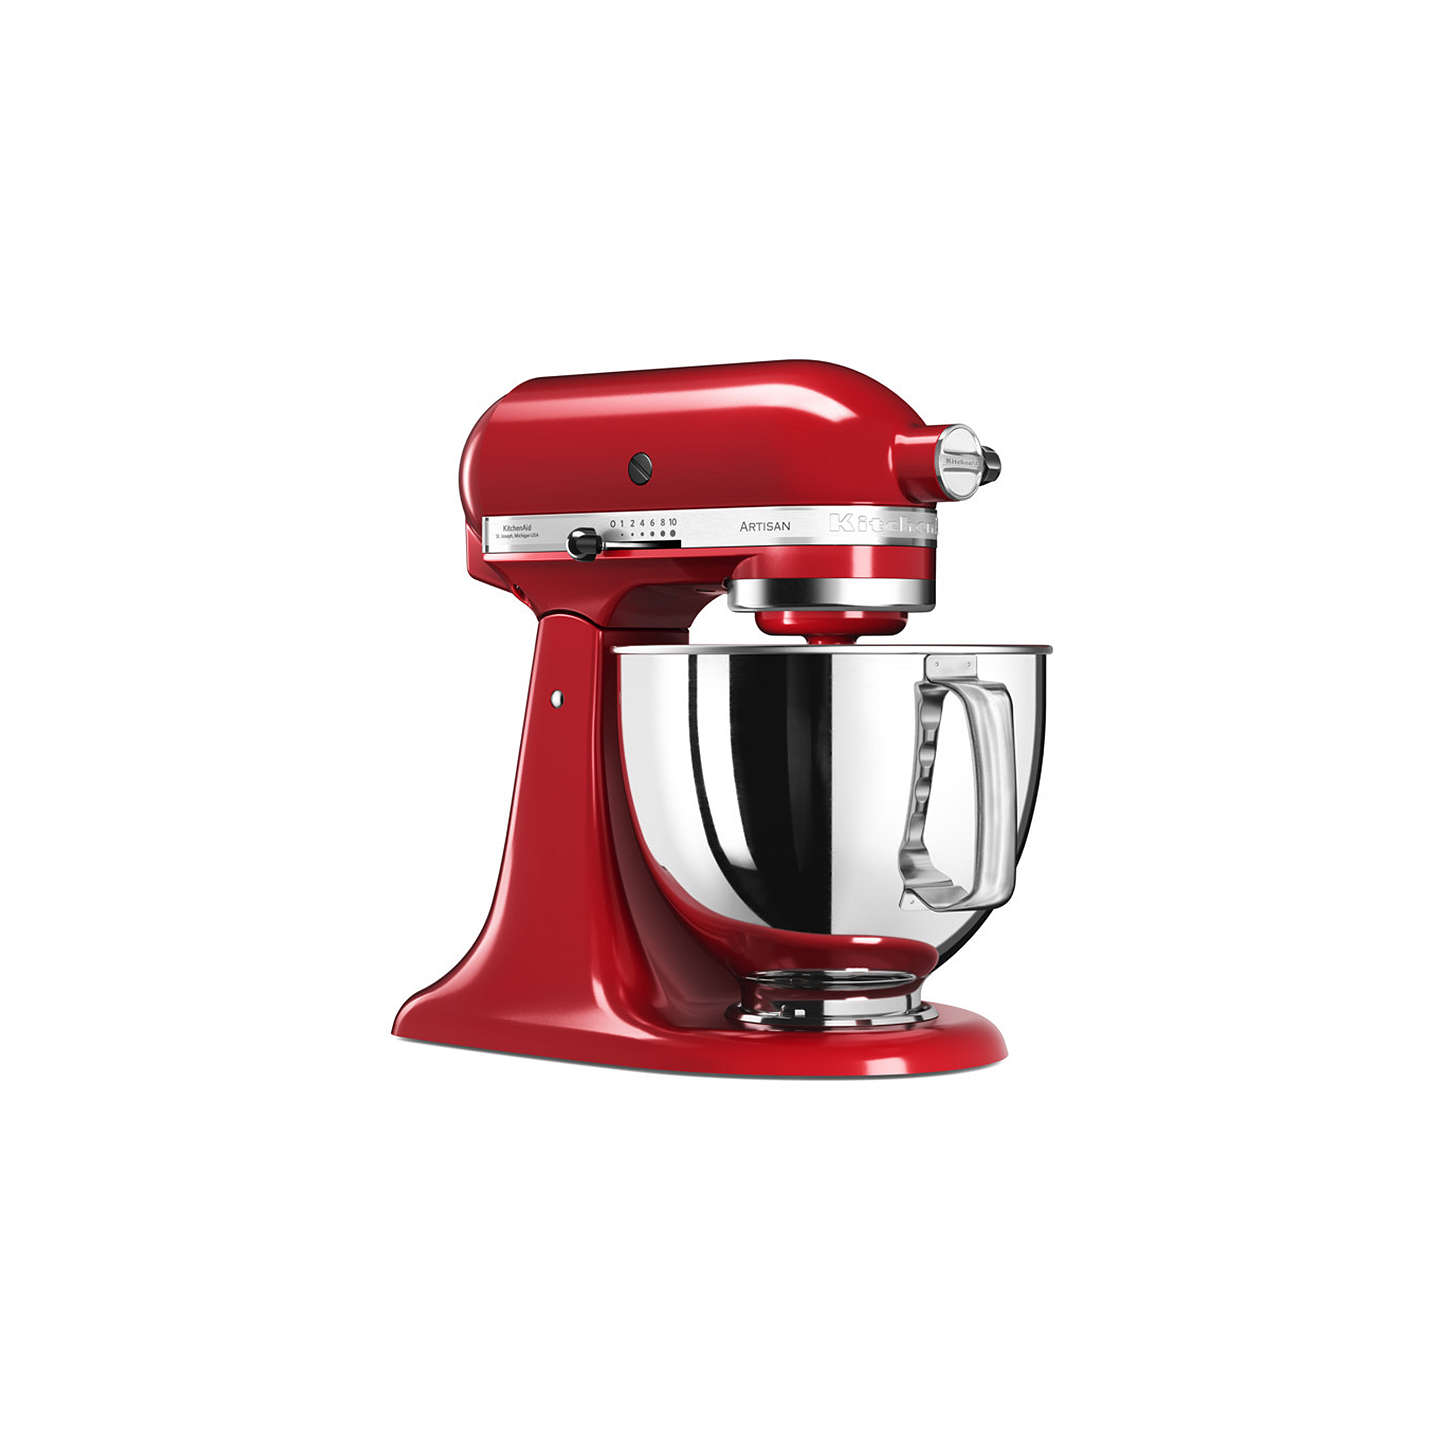 BuyKitchenAid 125 Artisan 4.8L Stand Mixer, Empire Red Online at johnlewis.com